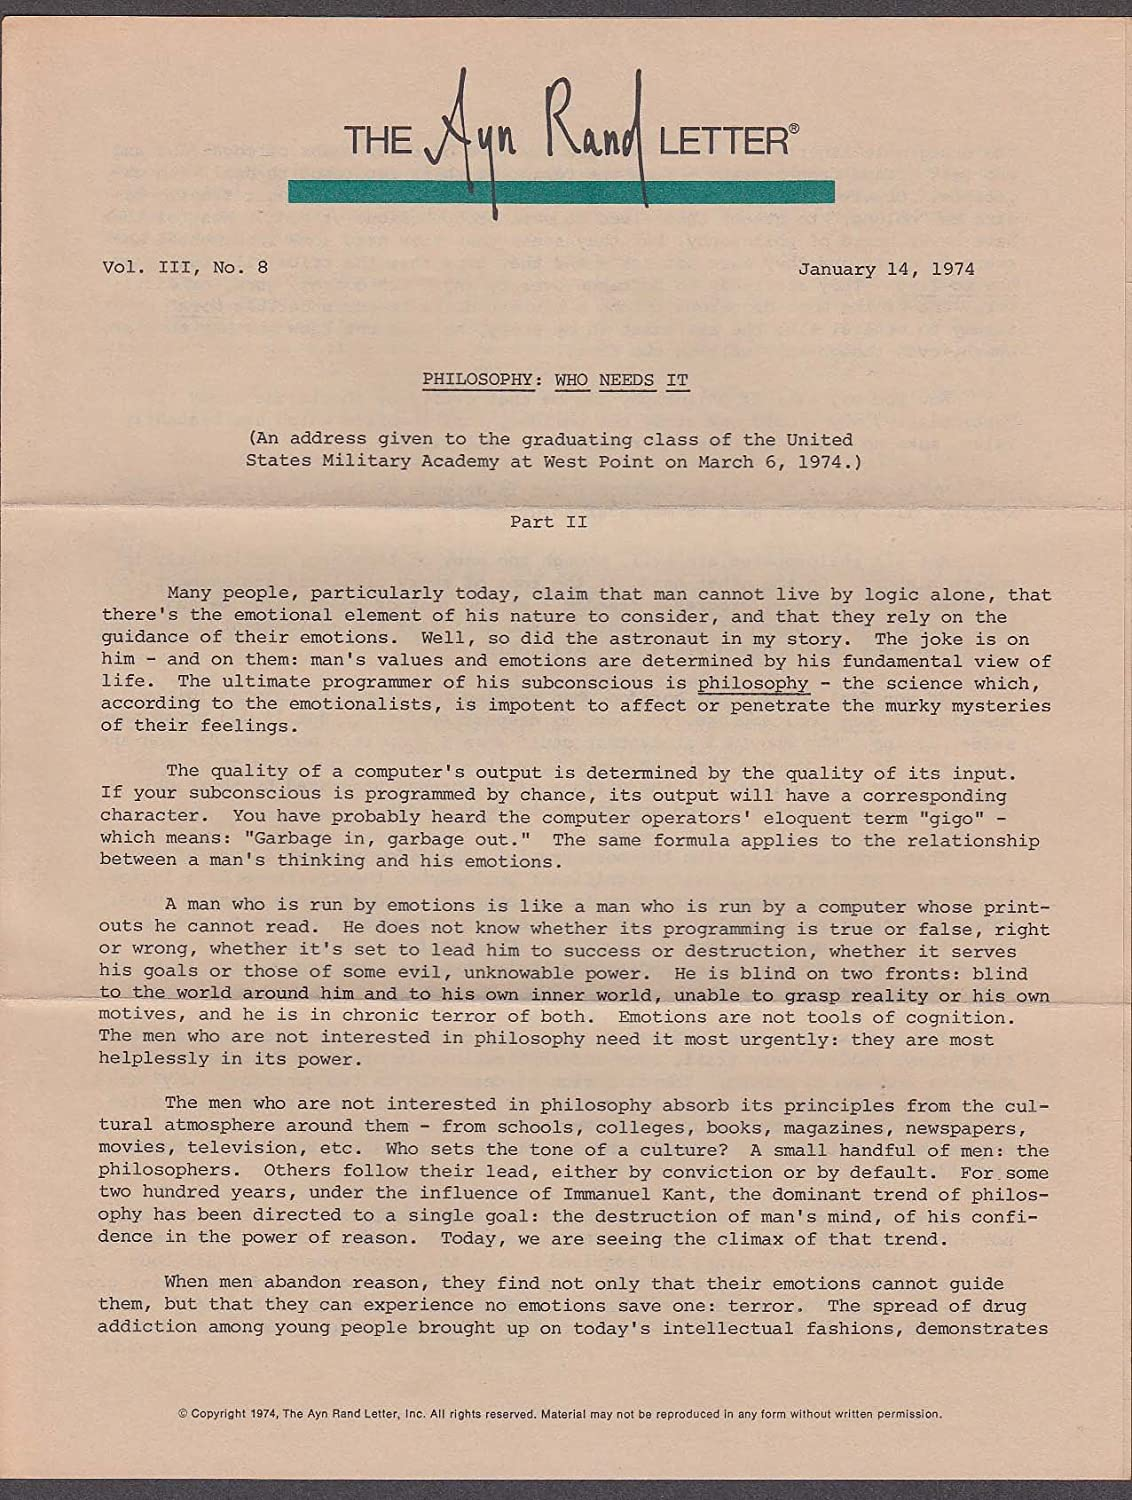 Ayn Rand Letter Vol 3 #8 Philosophy: Who Needs It Part II 1/14 1974 at  Amazon's Entertainment Collectibles Store